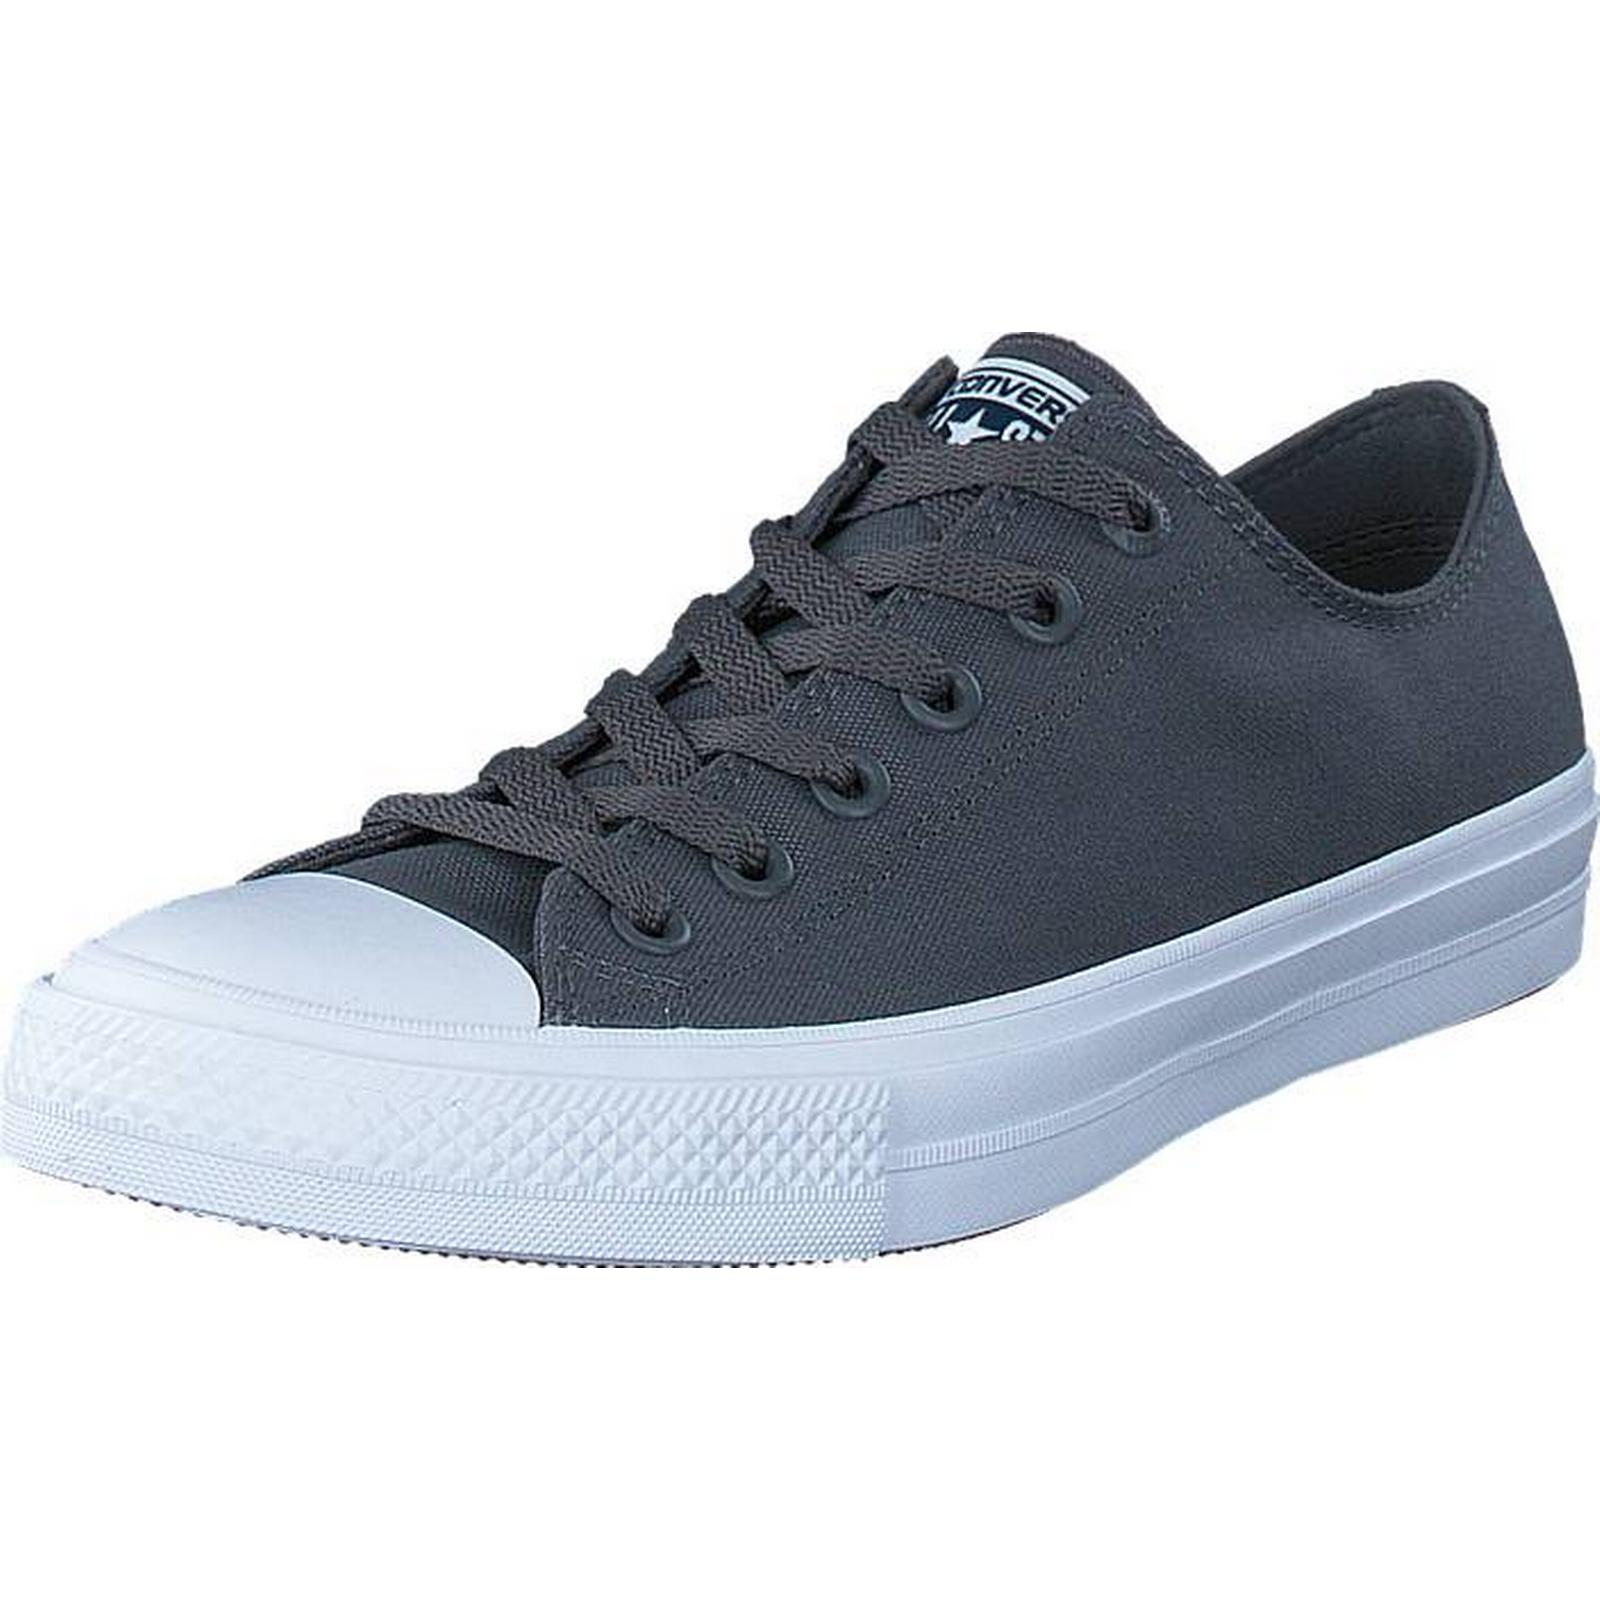 buy popular 1f497 d35a5 Converse All Star II Ox Thunder White, Shoes, Shoes, Shoes, Trainers